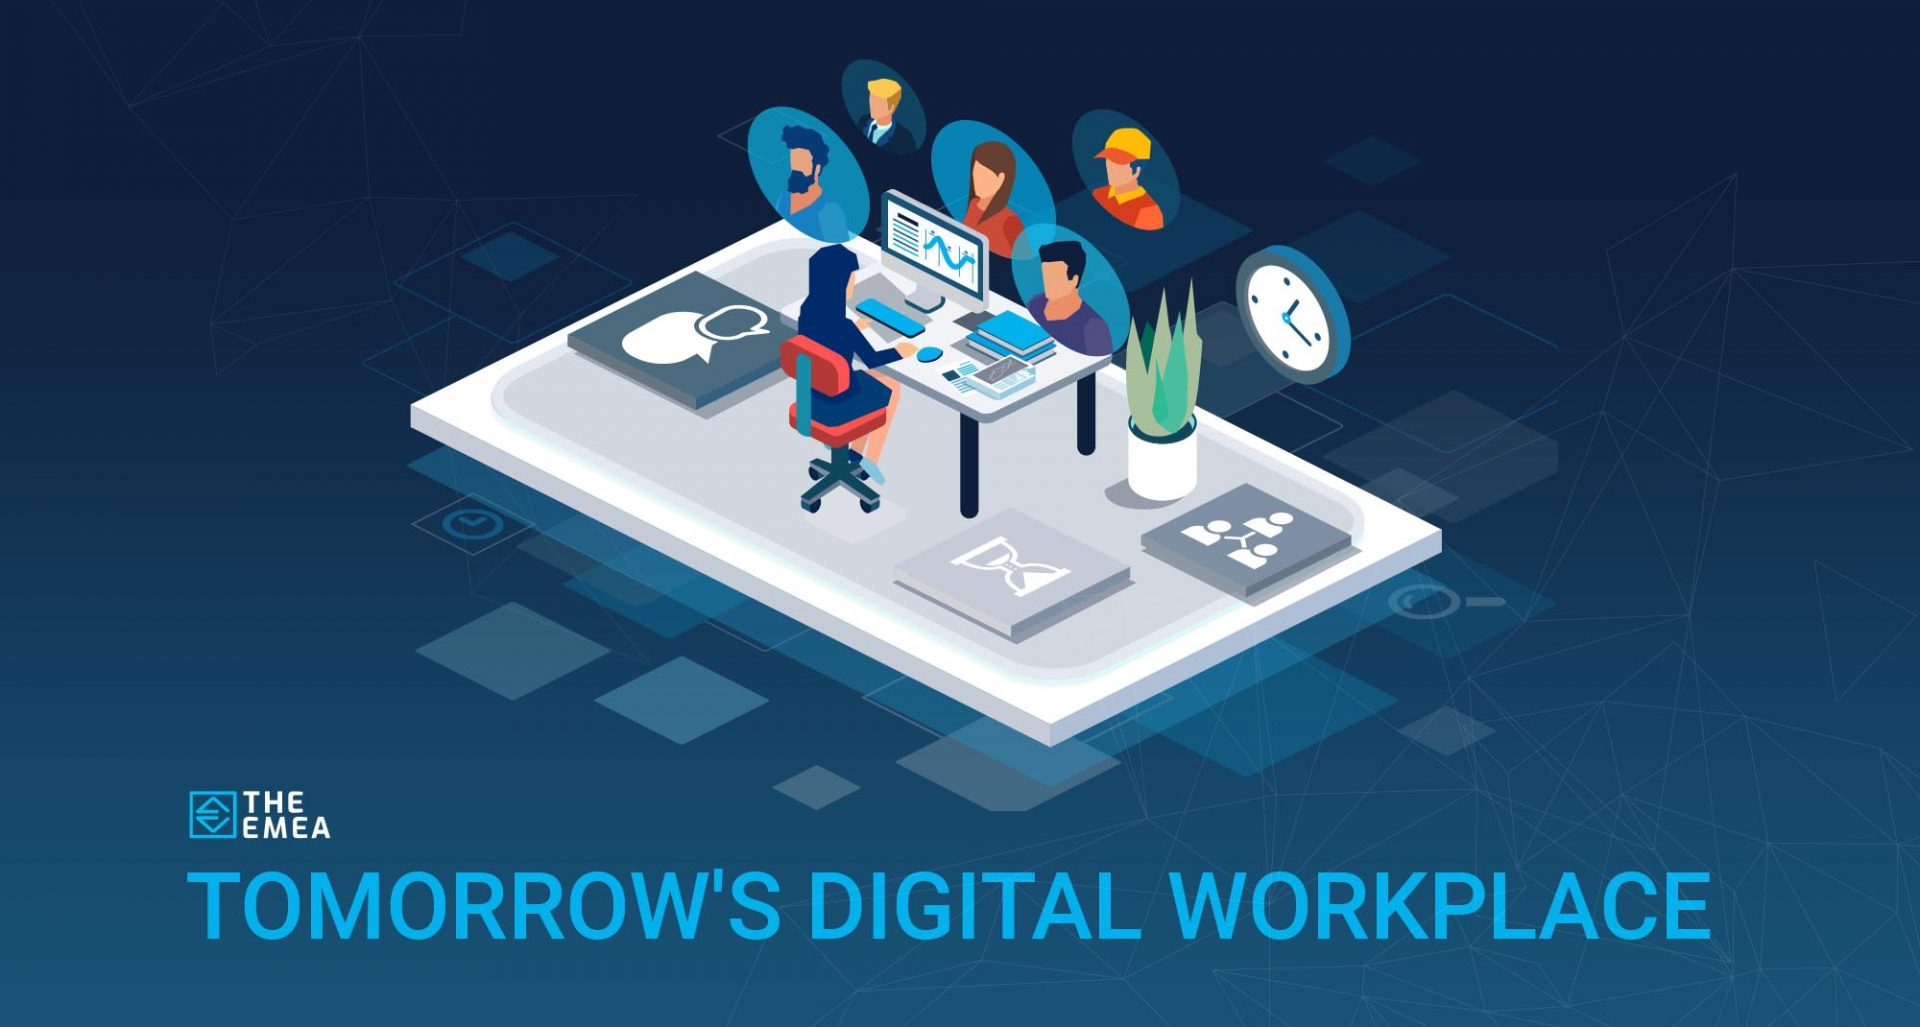 event: Tommorows Digital Workplace